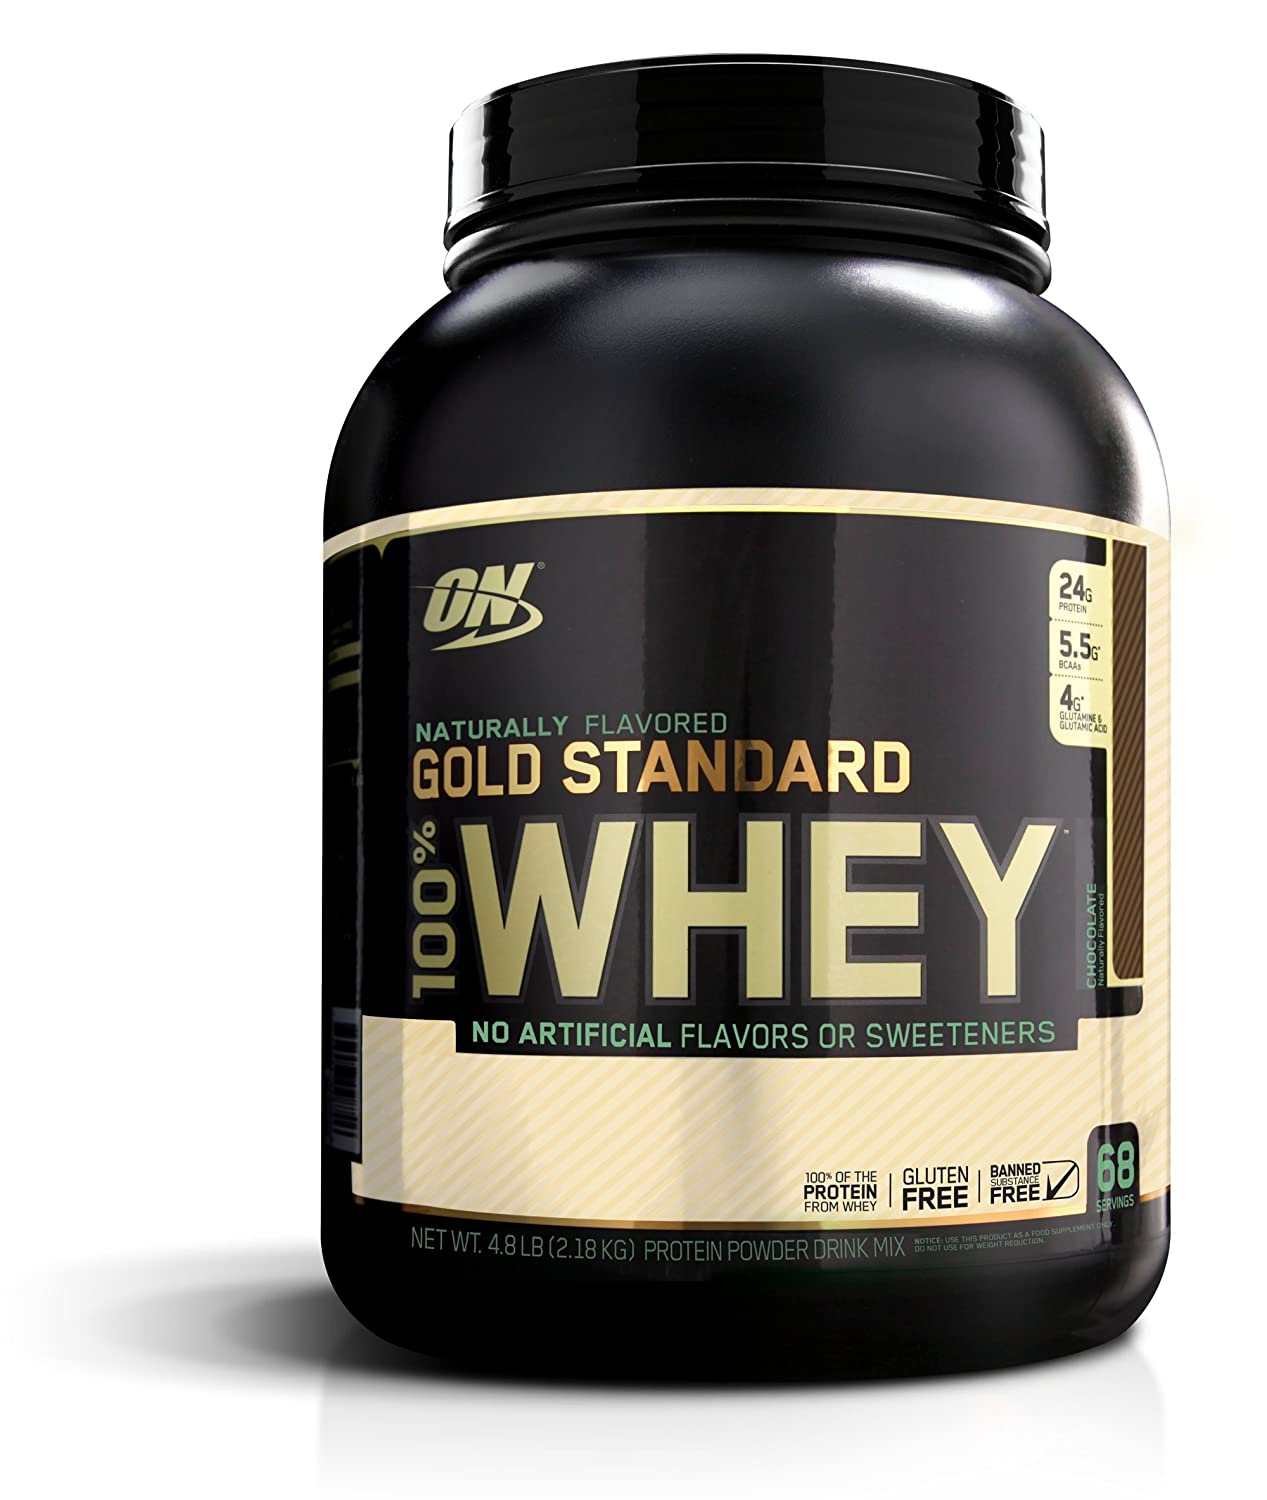 Amazon.com: OPTIMUM NUTRITION GOLD STANDARD 100% Whey Protein Powder,  Naturally Flavored Chocolate, 4.8lbs.: Health & Personal Care